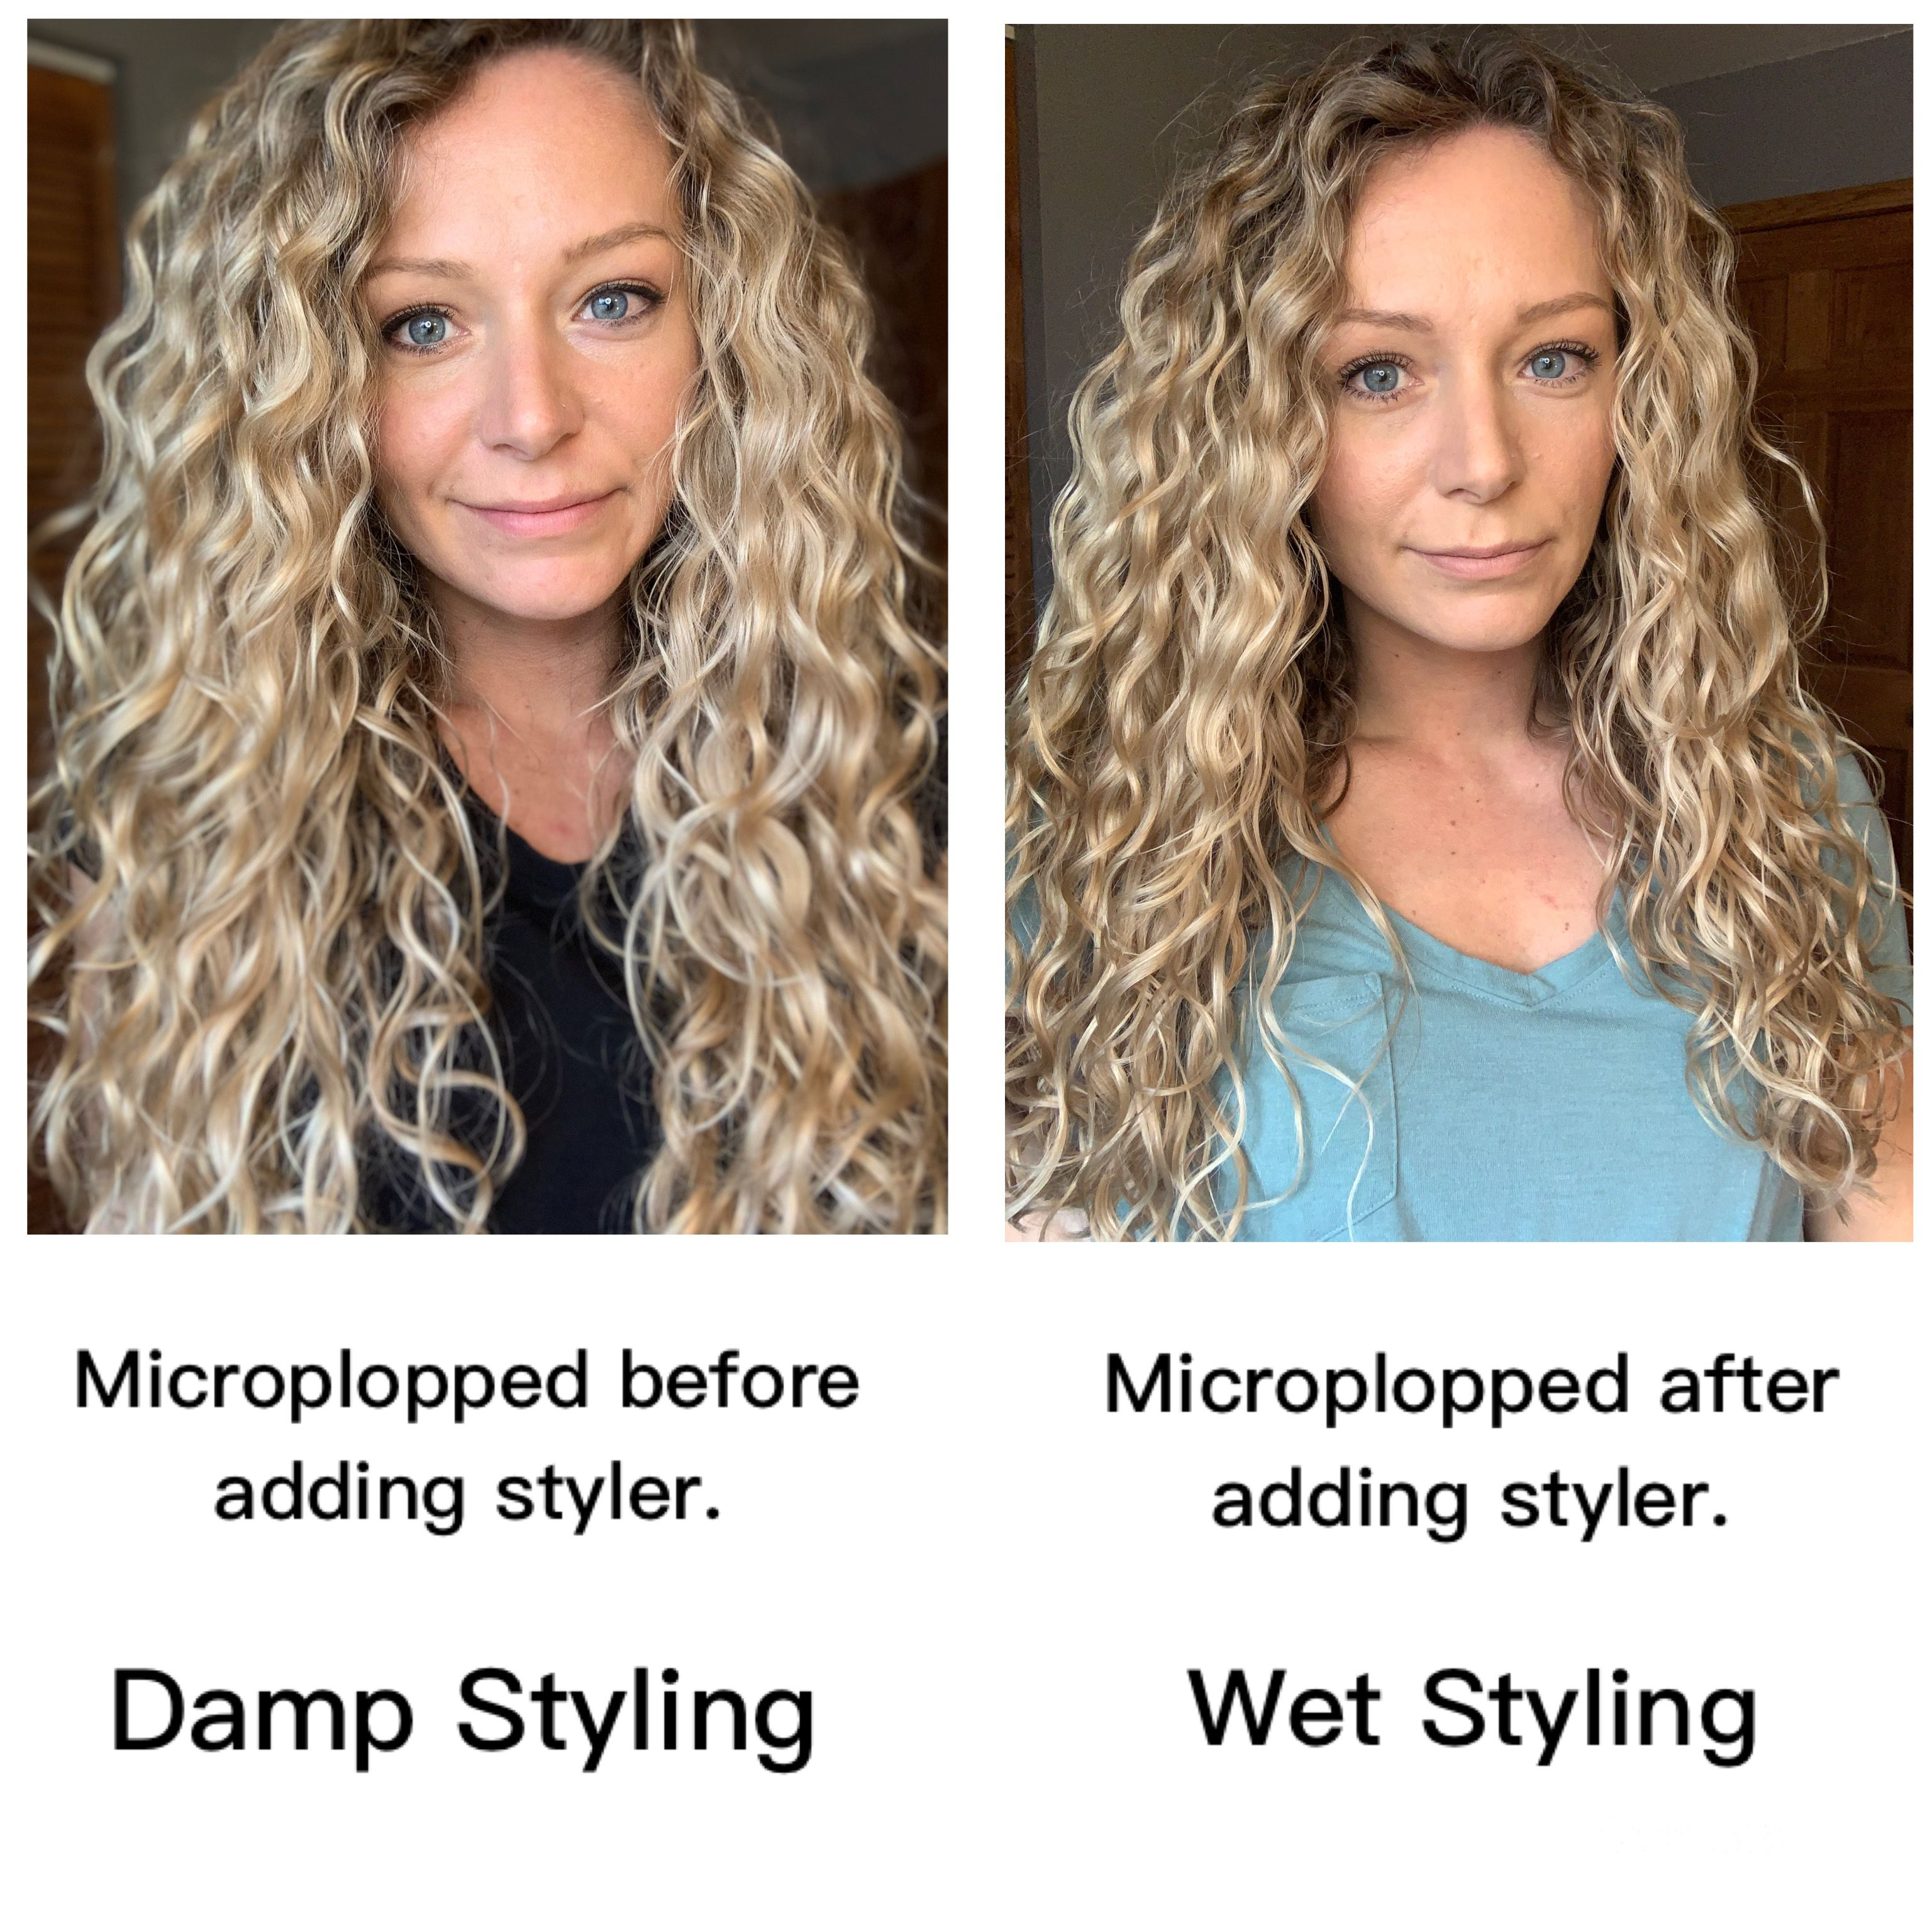 How To Style Wavy Hair For Mega Volume In 2020 Wet Style Hair Wavy Hair